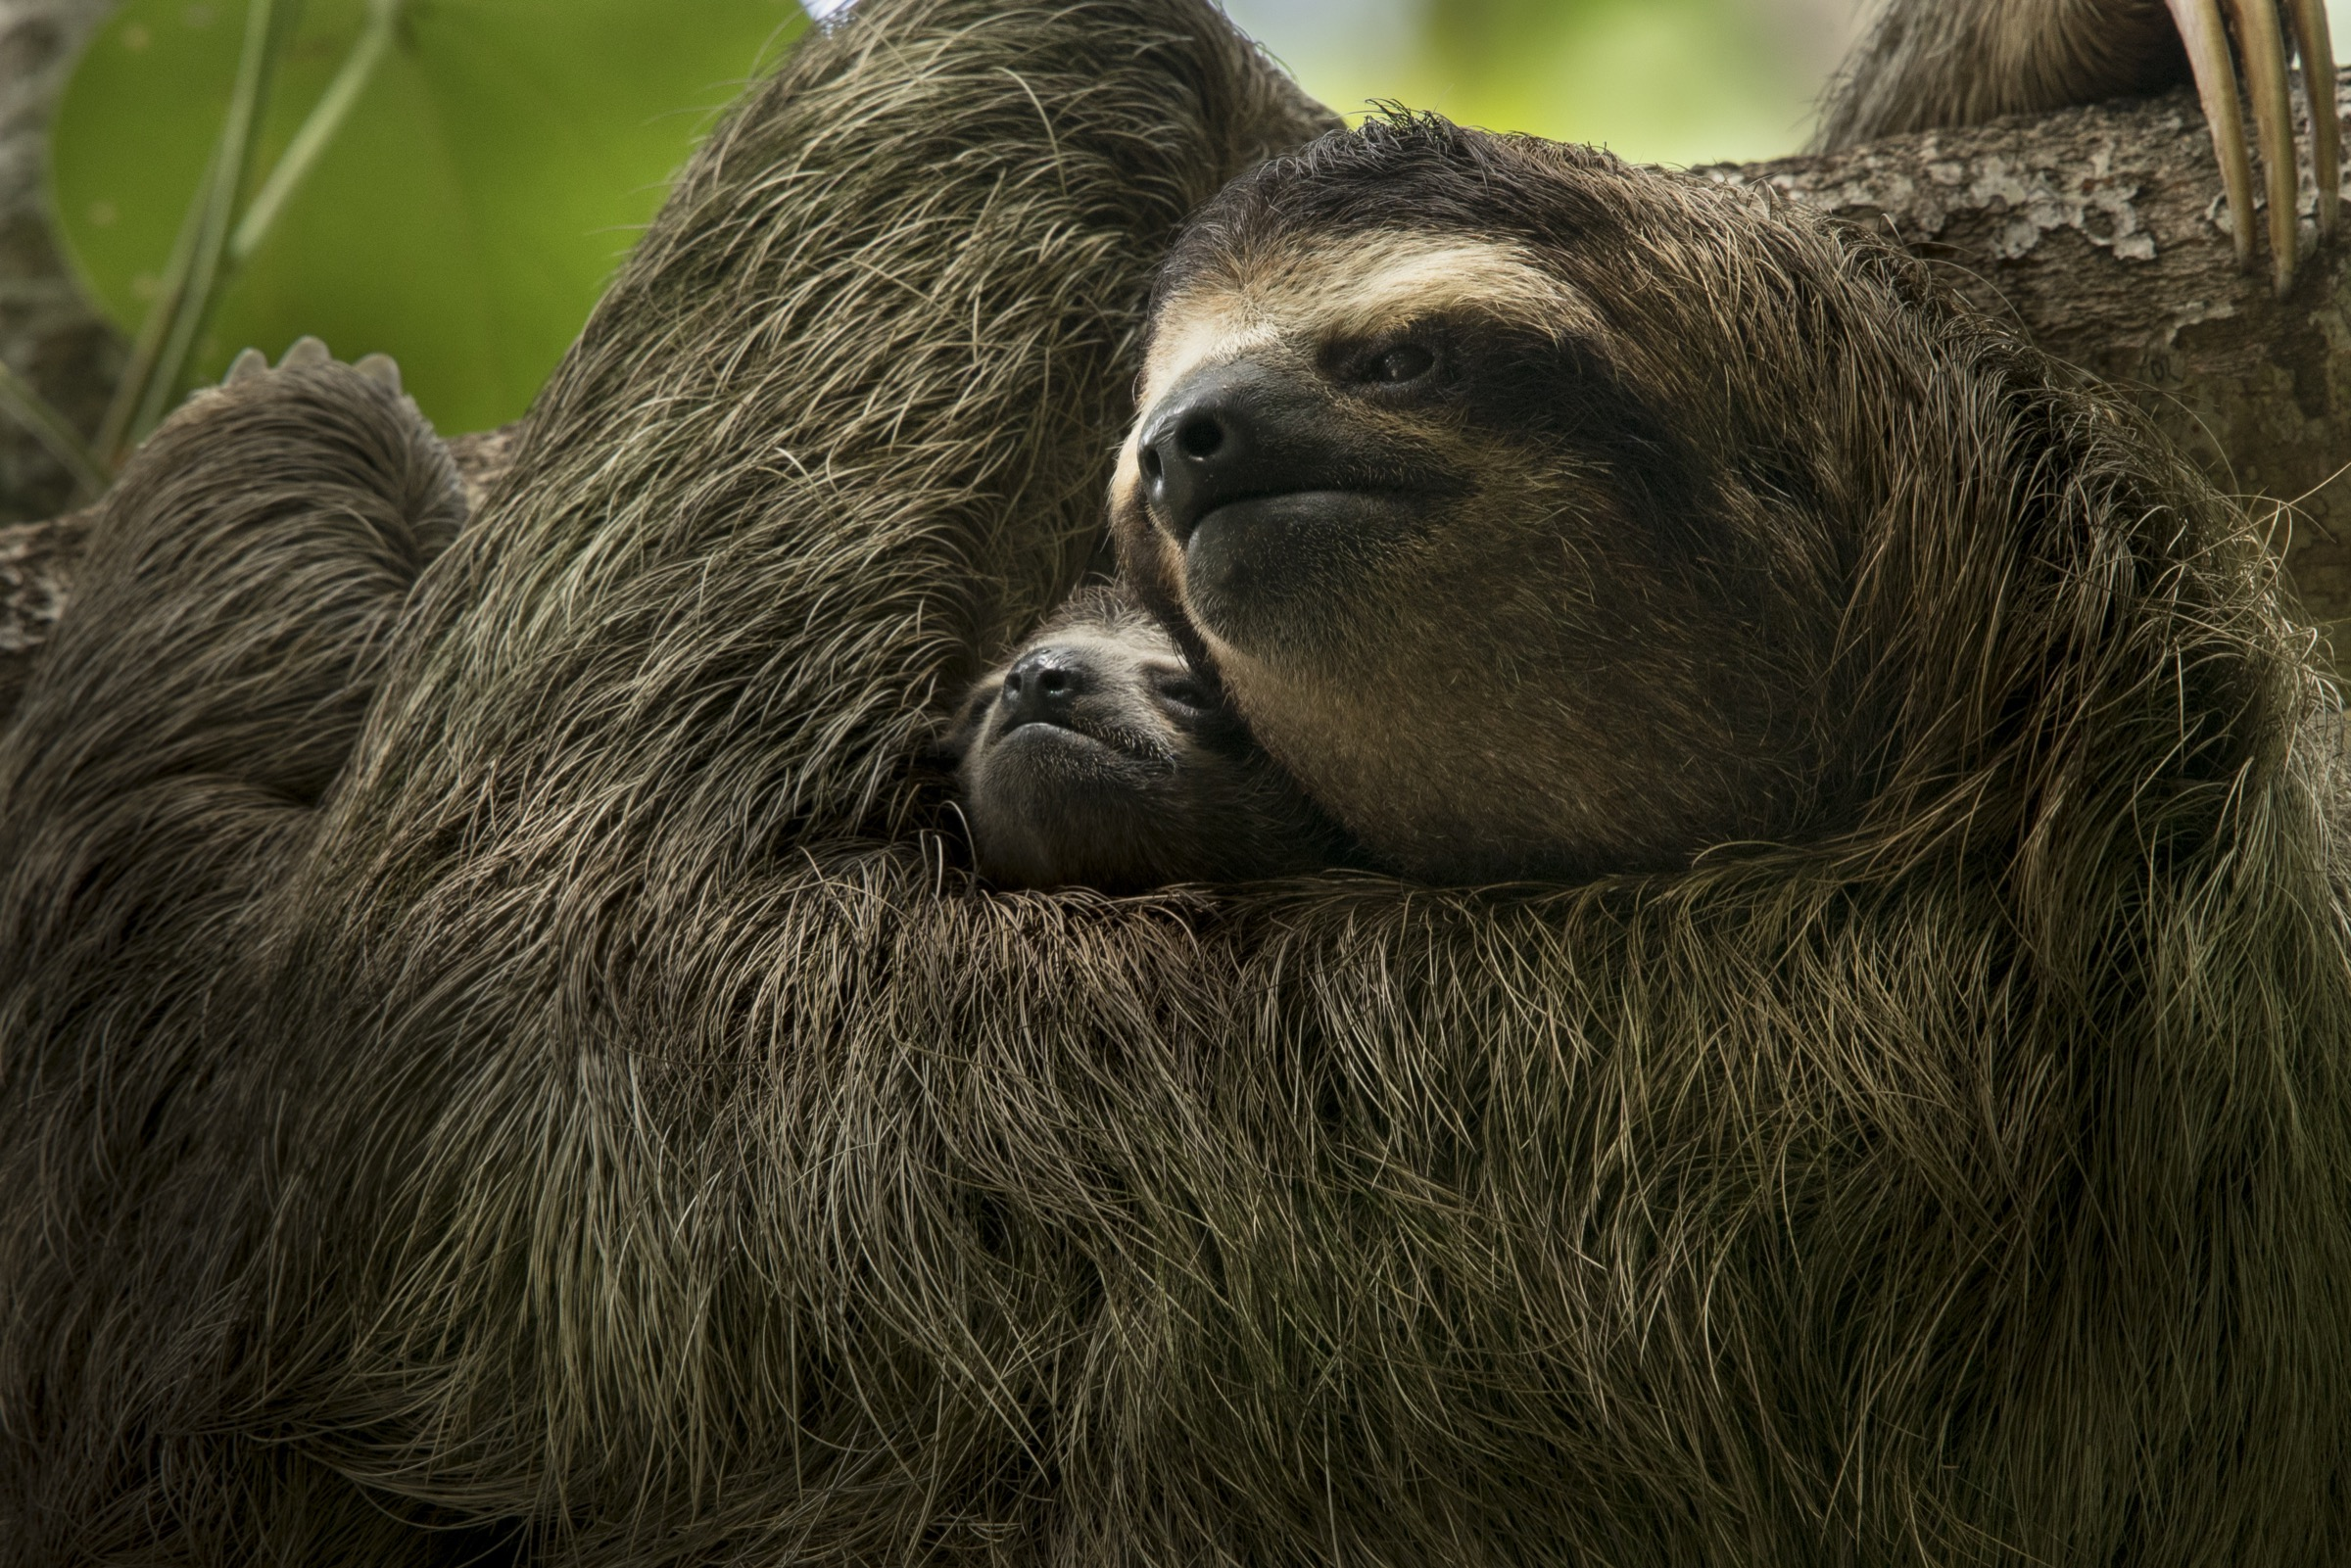 A three-toed sloth mother and baby (<em>Bradypus</em> sp.) are two of the many inhabitants of Central America's rainforest ecosystem.